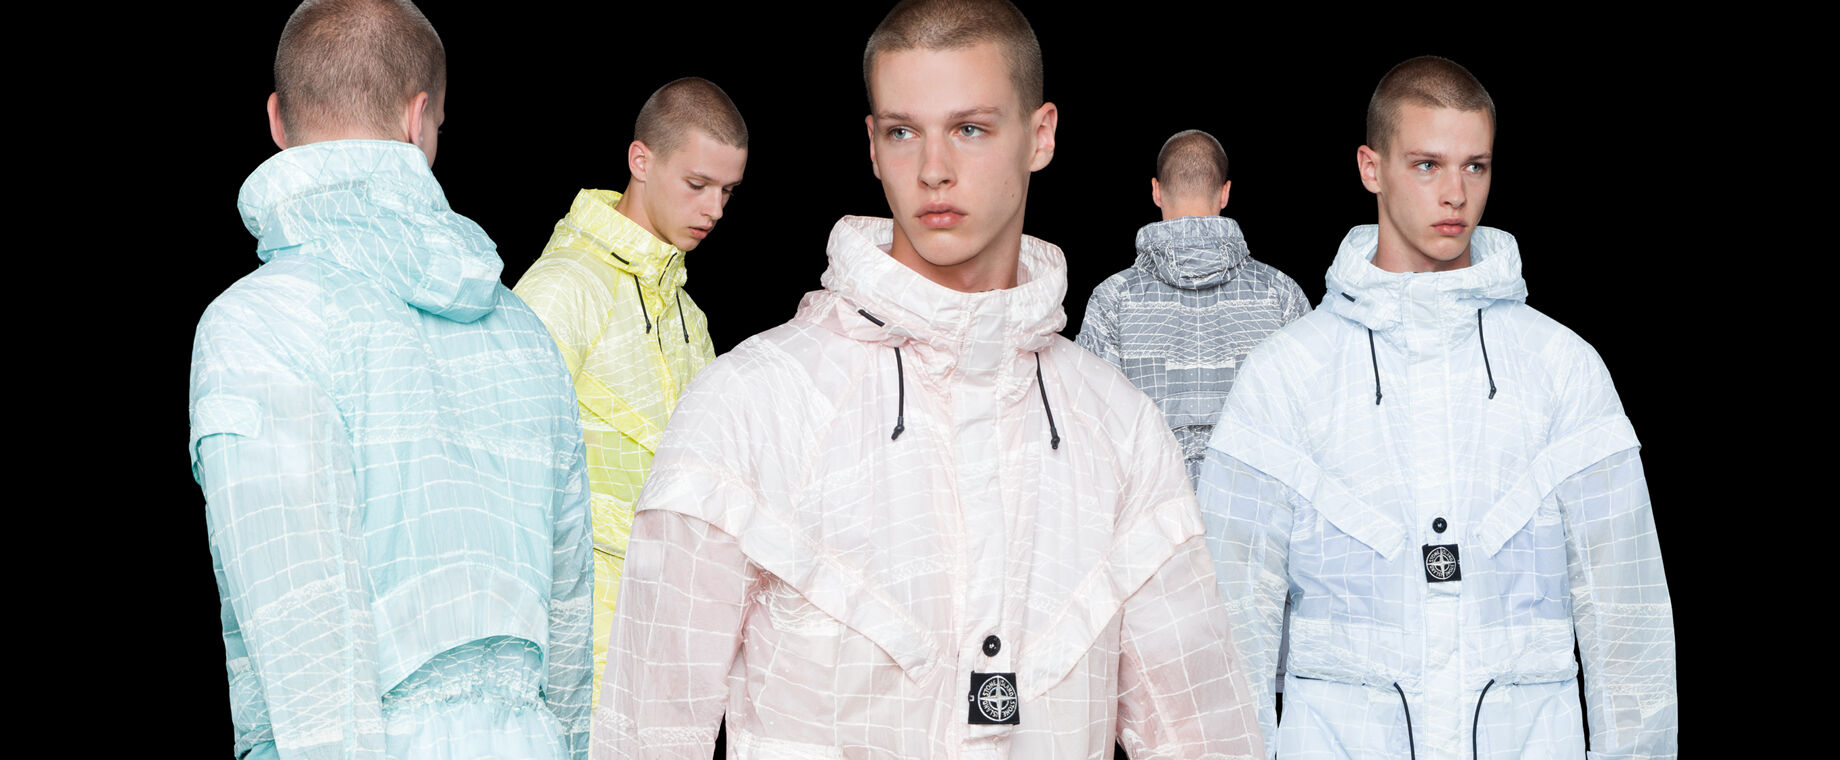 Stone Island - Collection Reflective Grid Printemps-Été 2021